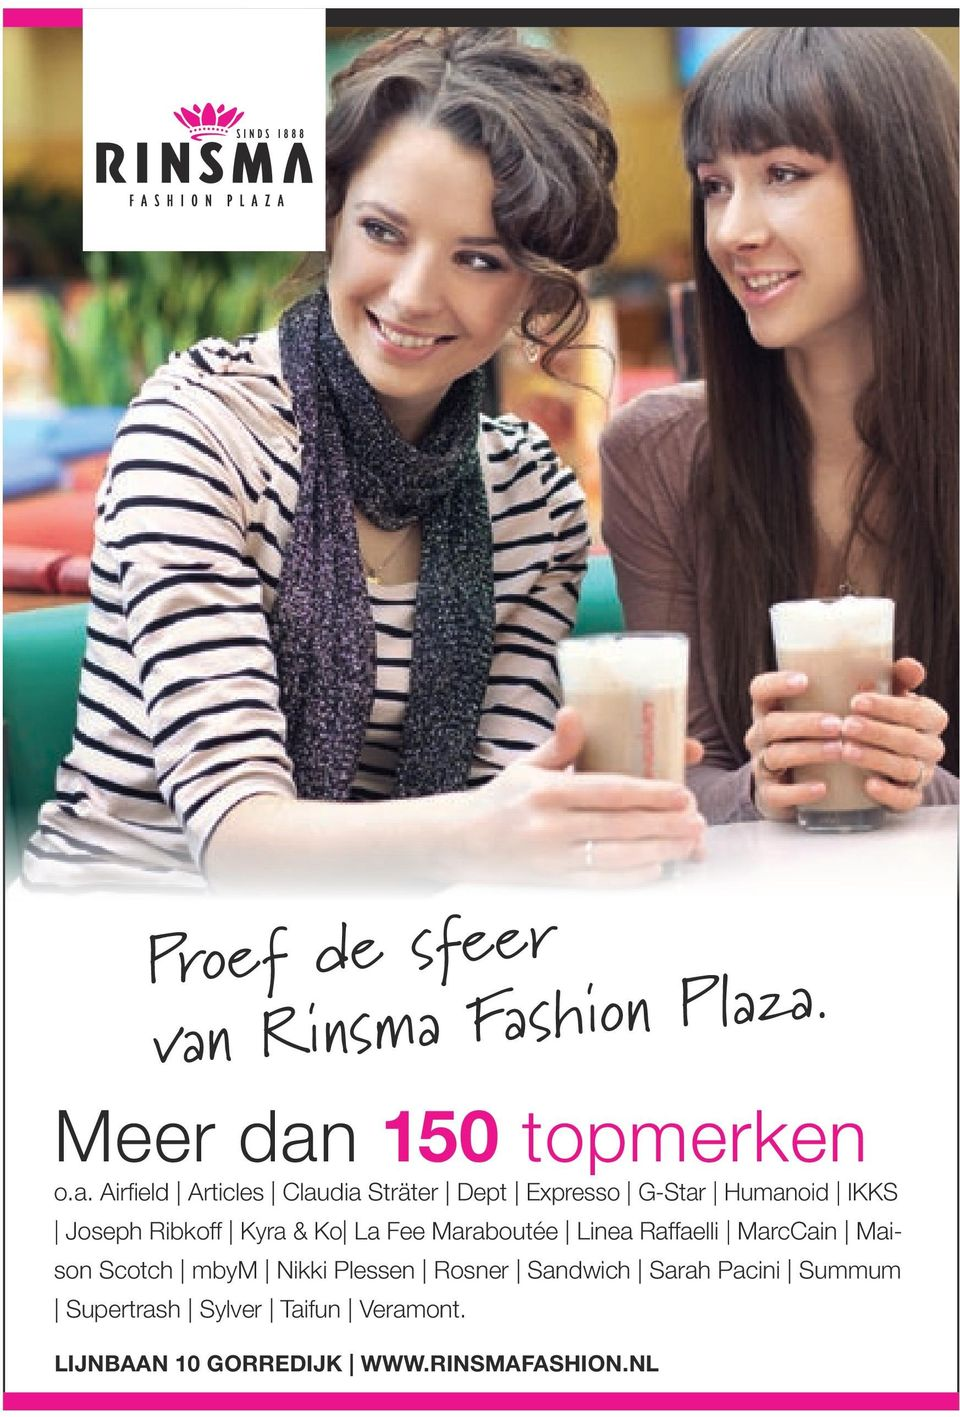 Fashion Plaza. Meer dan 150 topmerken o.a. Airfield Articles Claudia Sträter Dept